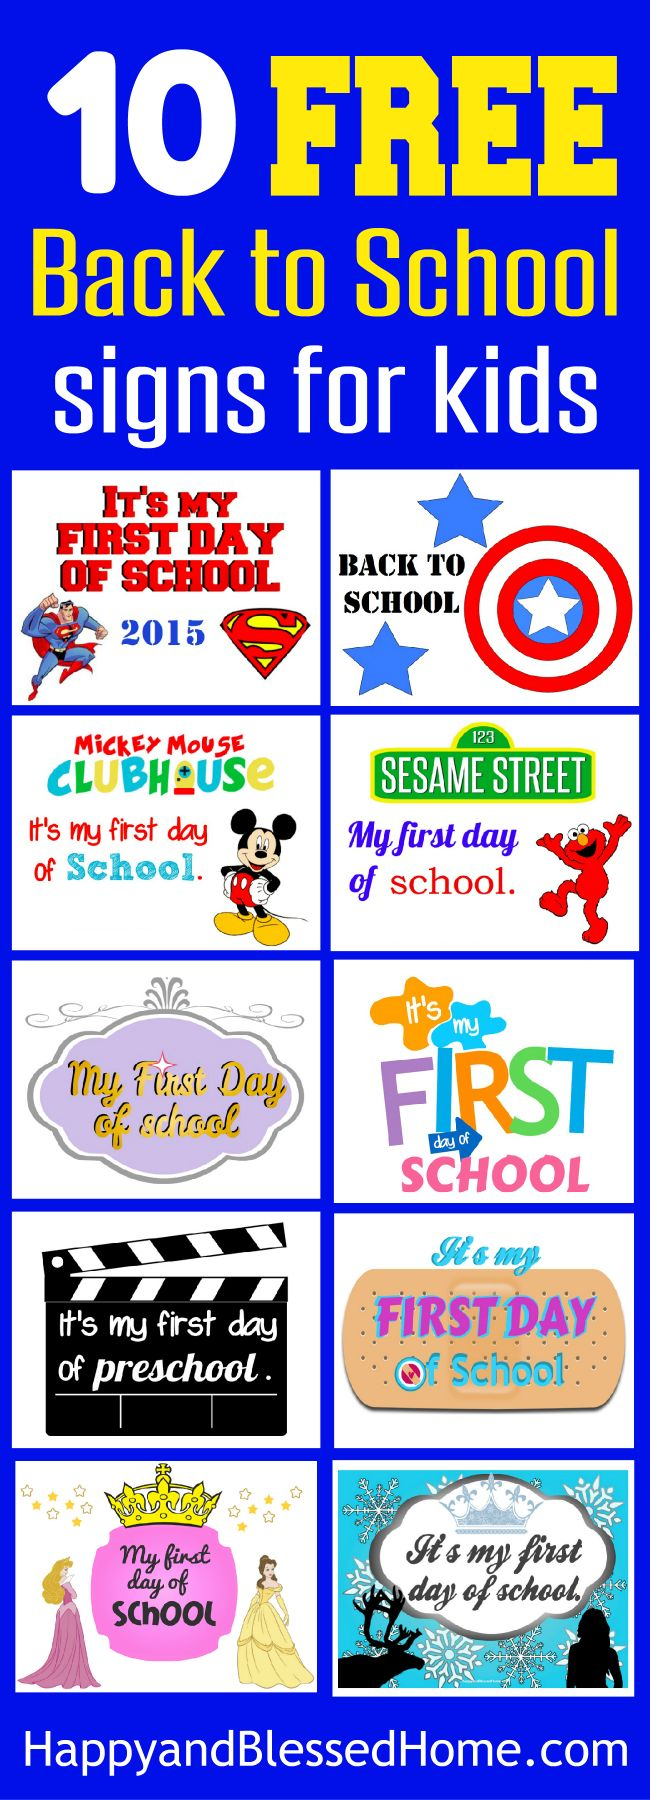 10 Free Back to School Signs for Kids from HappyandBlessedHome.com created using adorable graphics and kid-friendly design perfect for your back to school activities!